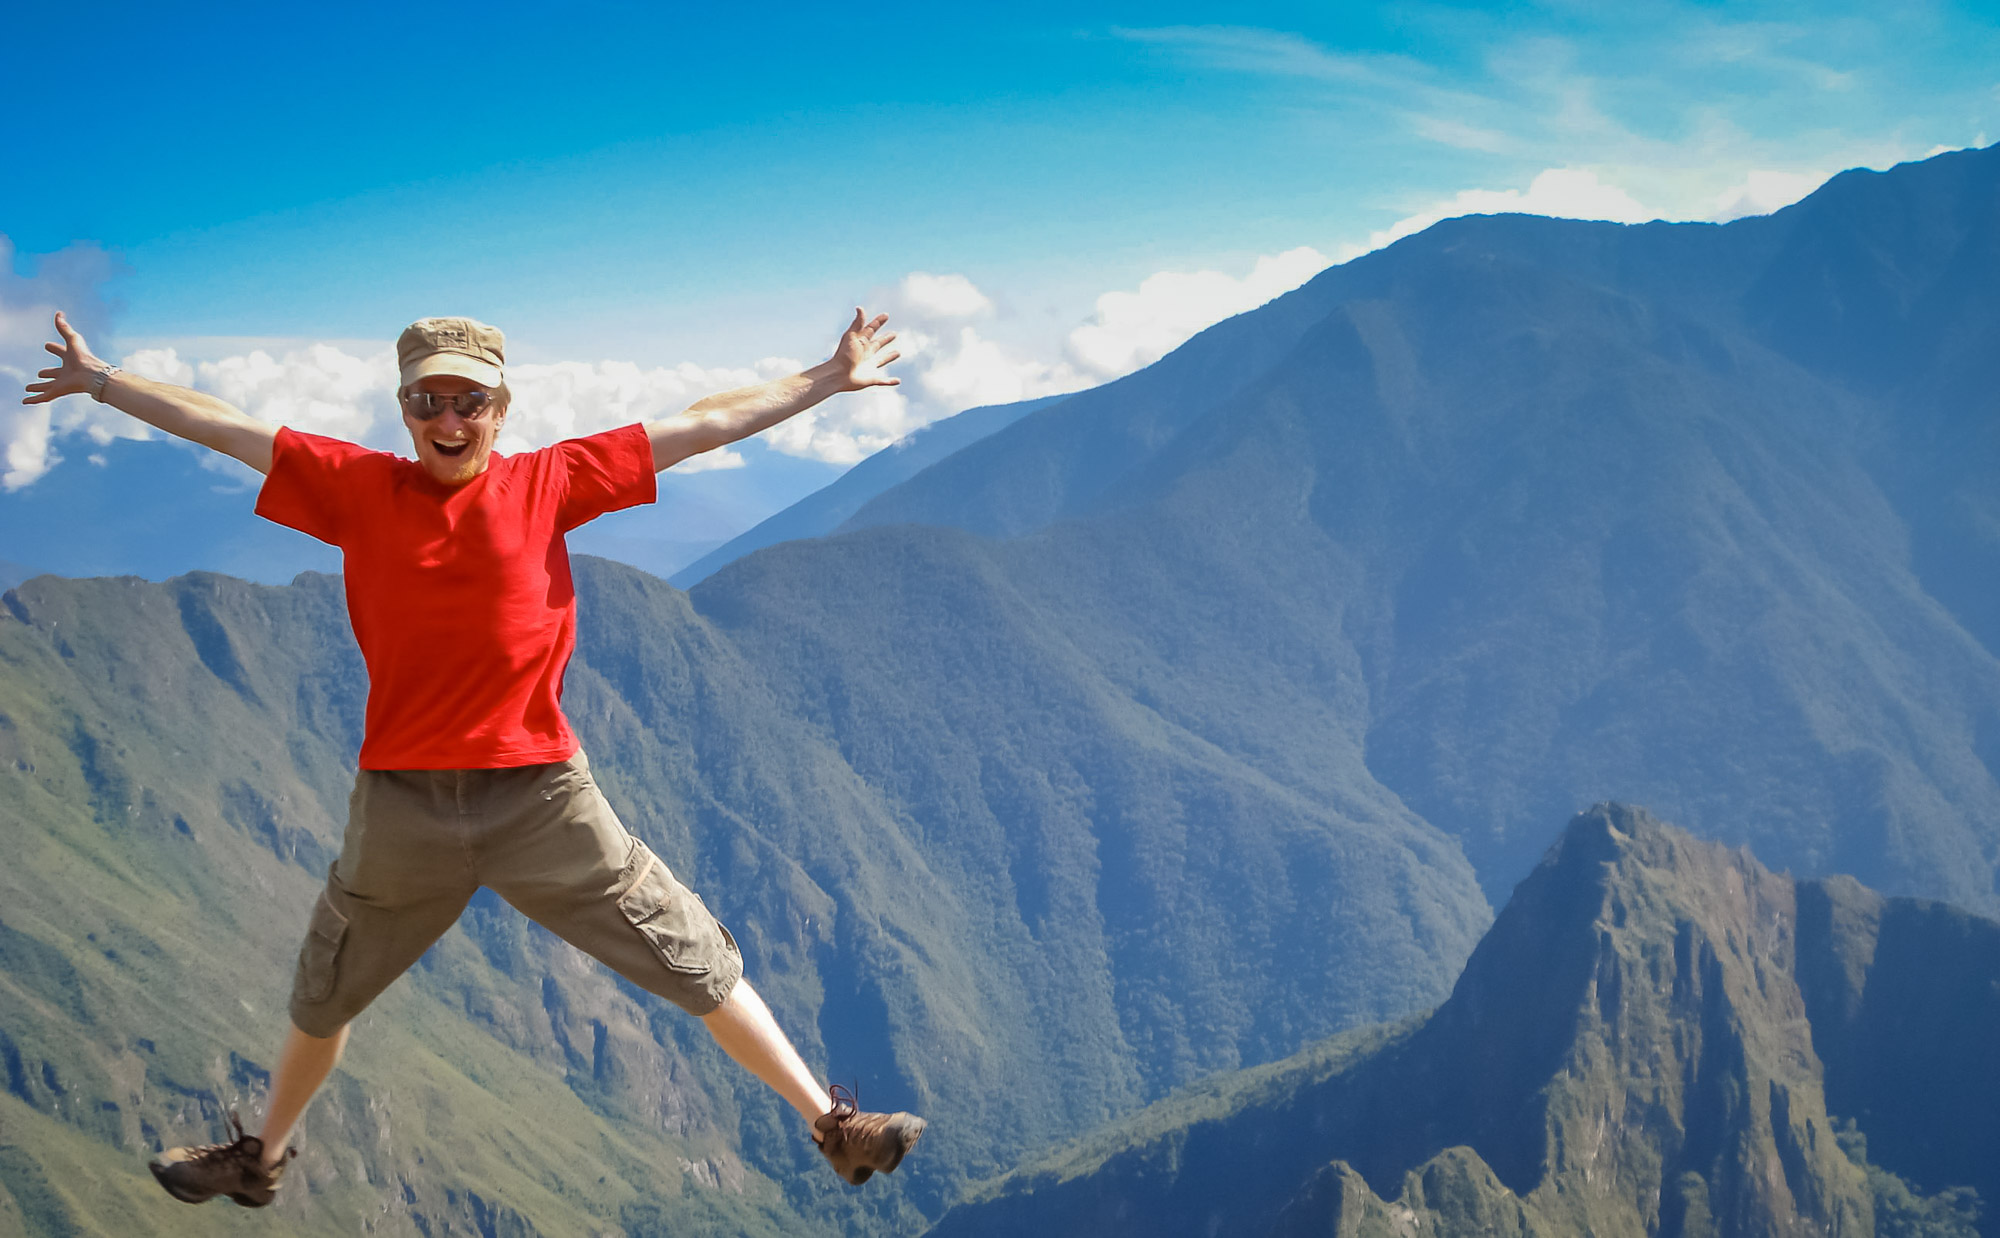 Peru adventure tour guest jumping for joy on Machu Picchu mountain